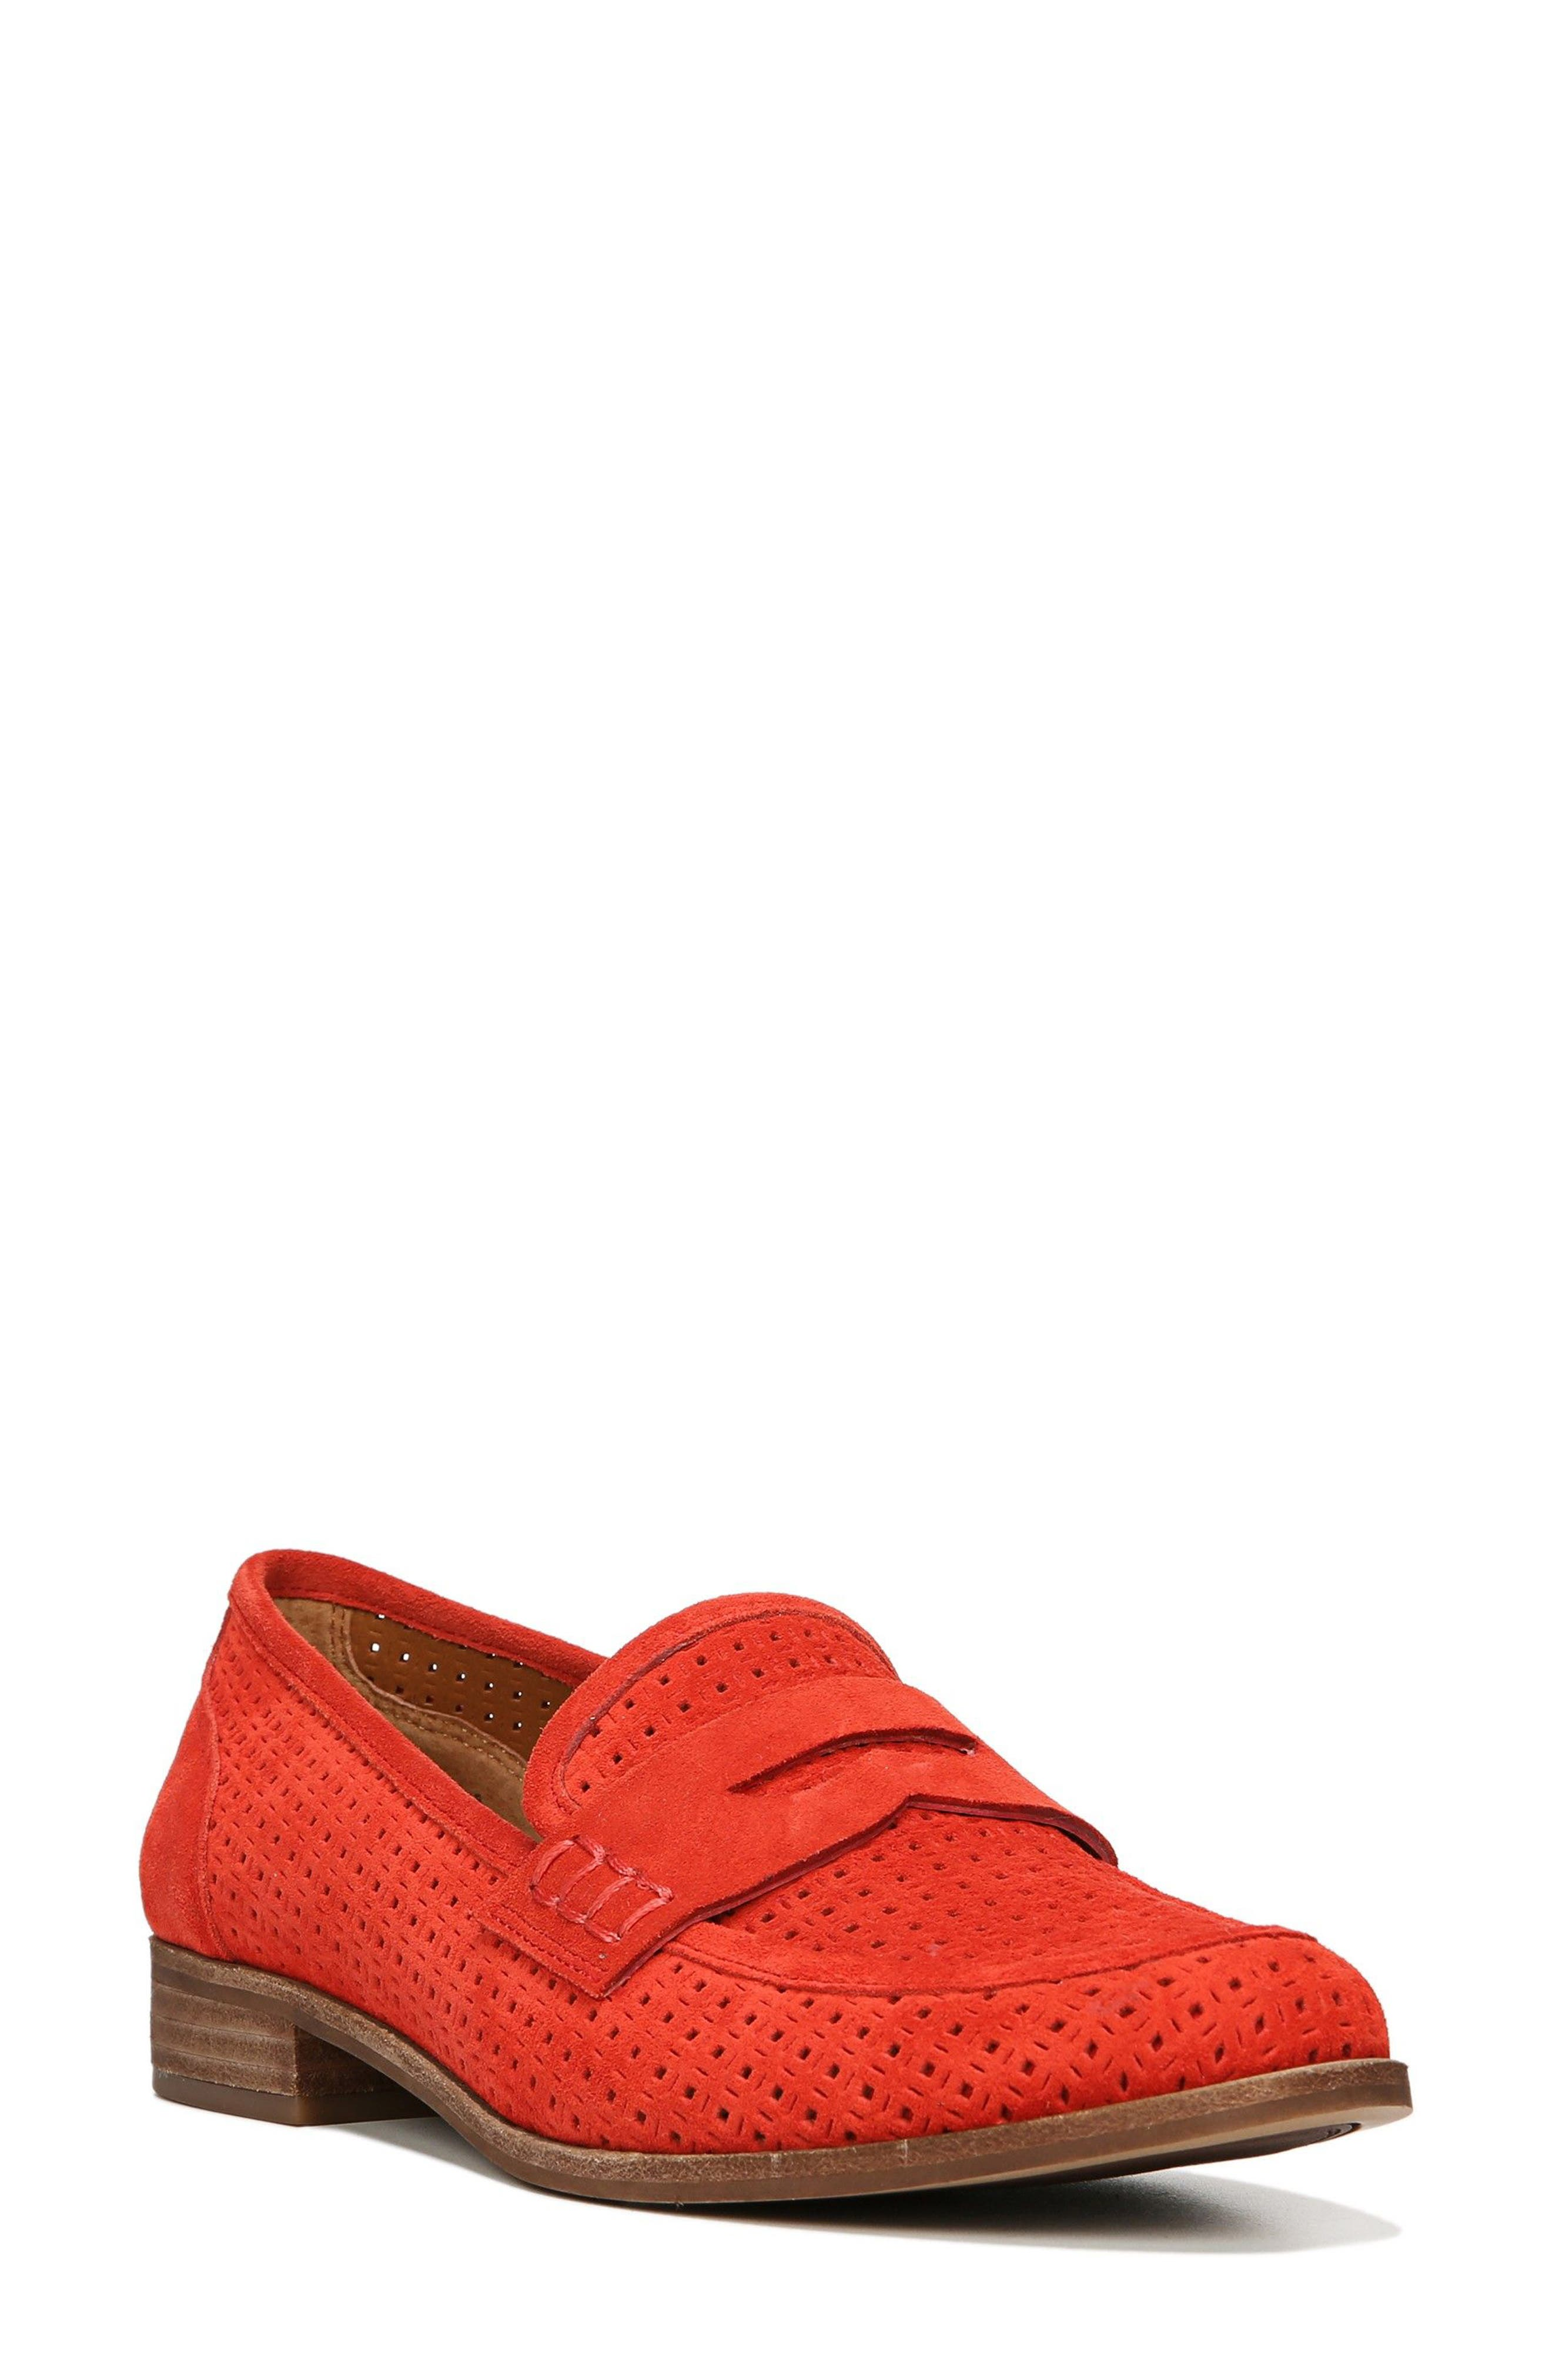 'Jolette' Penny Loafer,                         Main,                         color, Red Perforated Suede